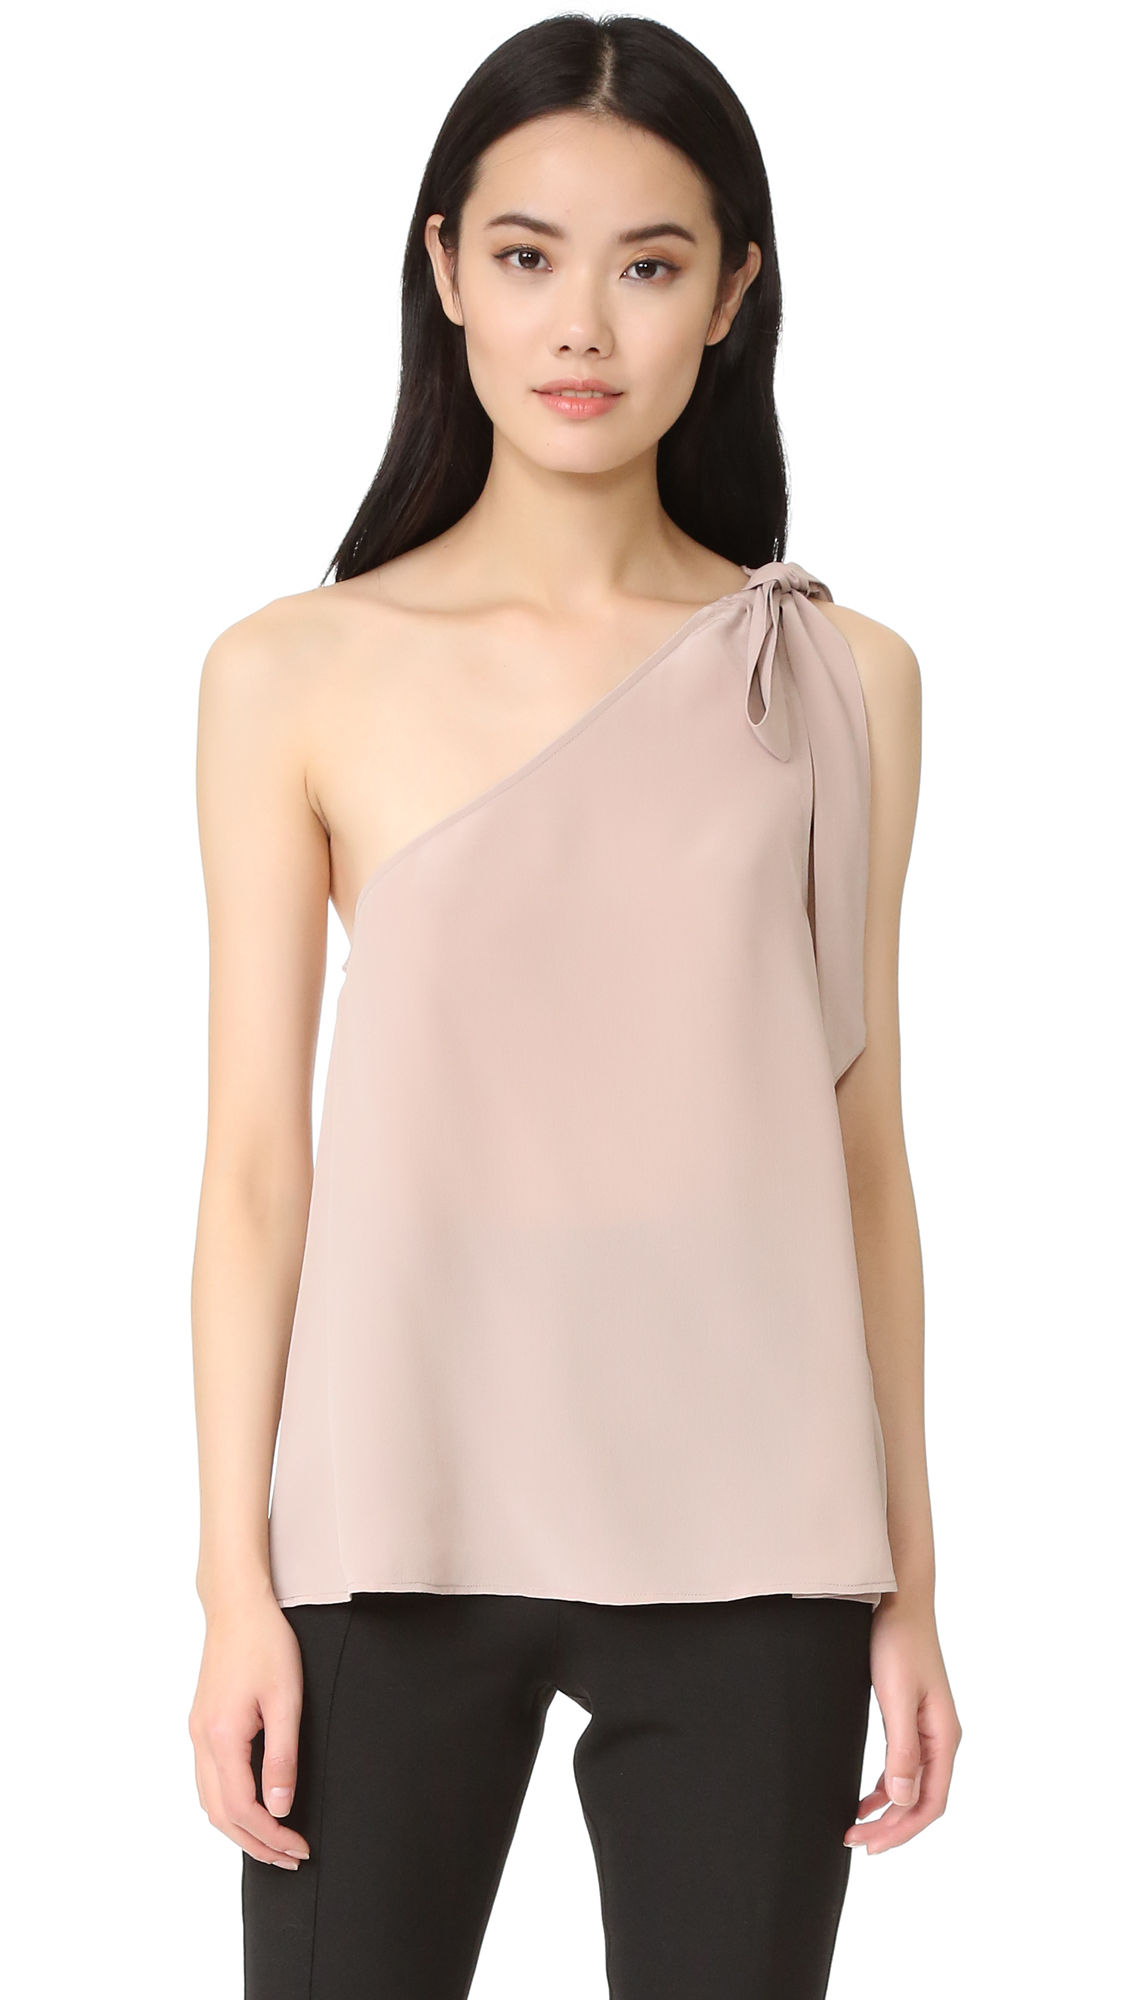 Joie Romana Top - Dusty Mink at Shopbop